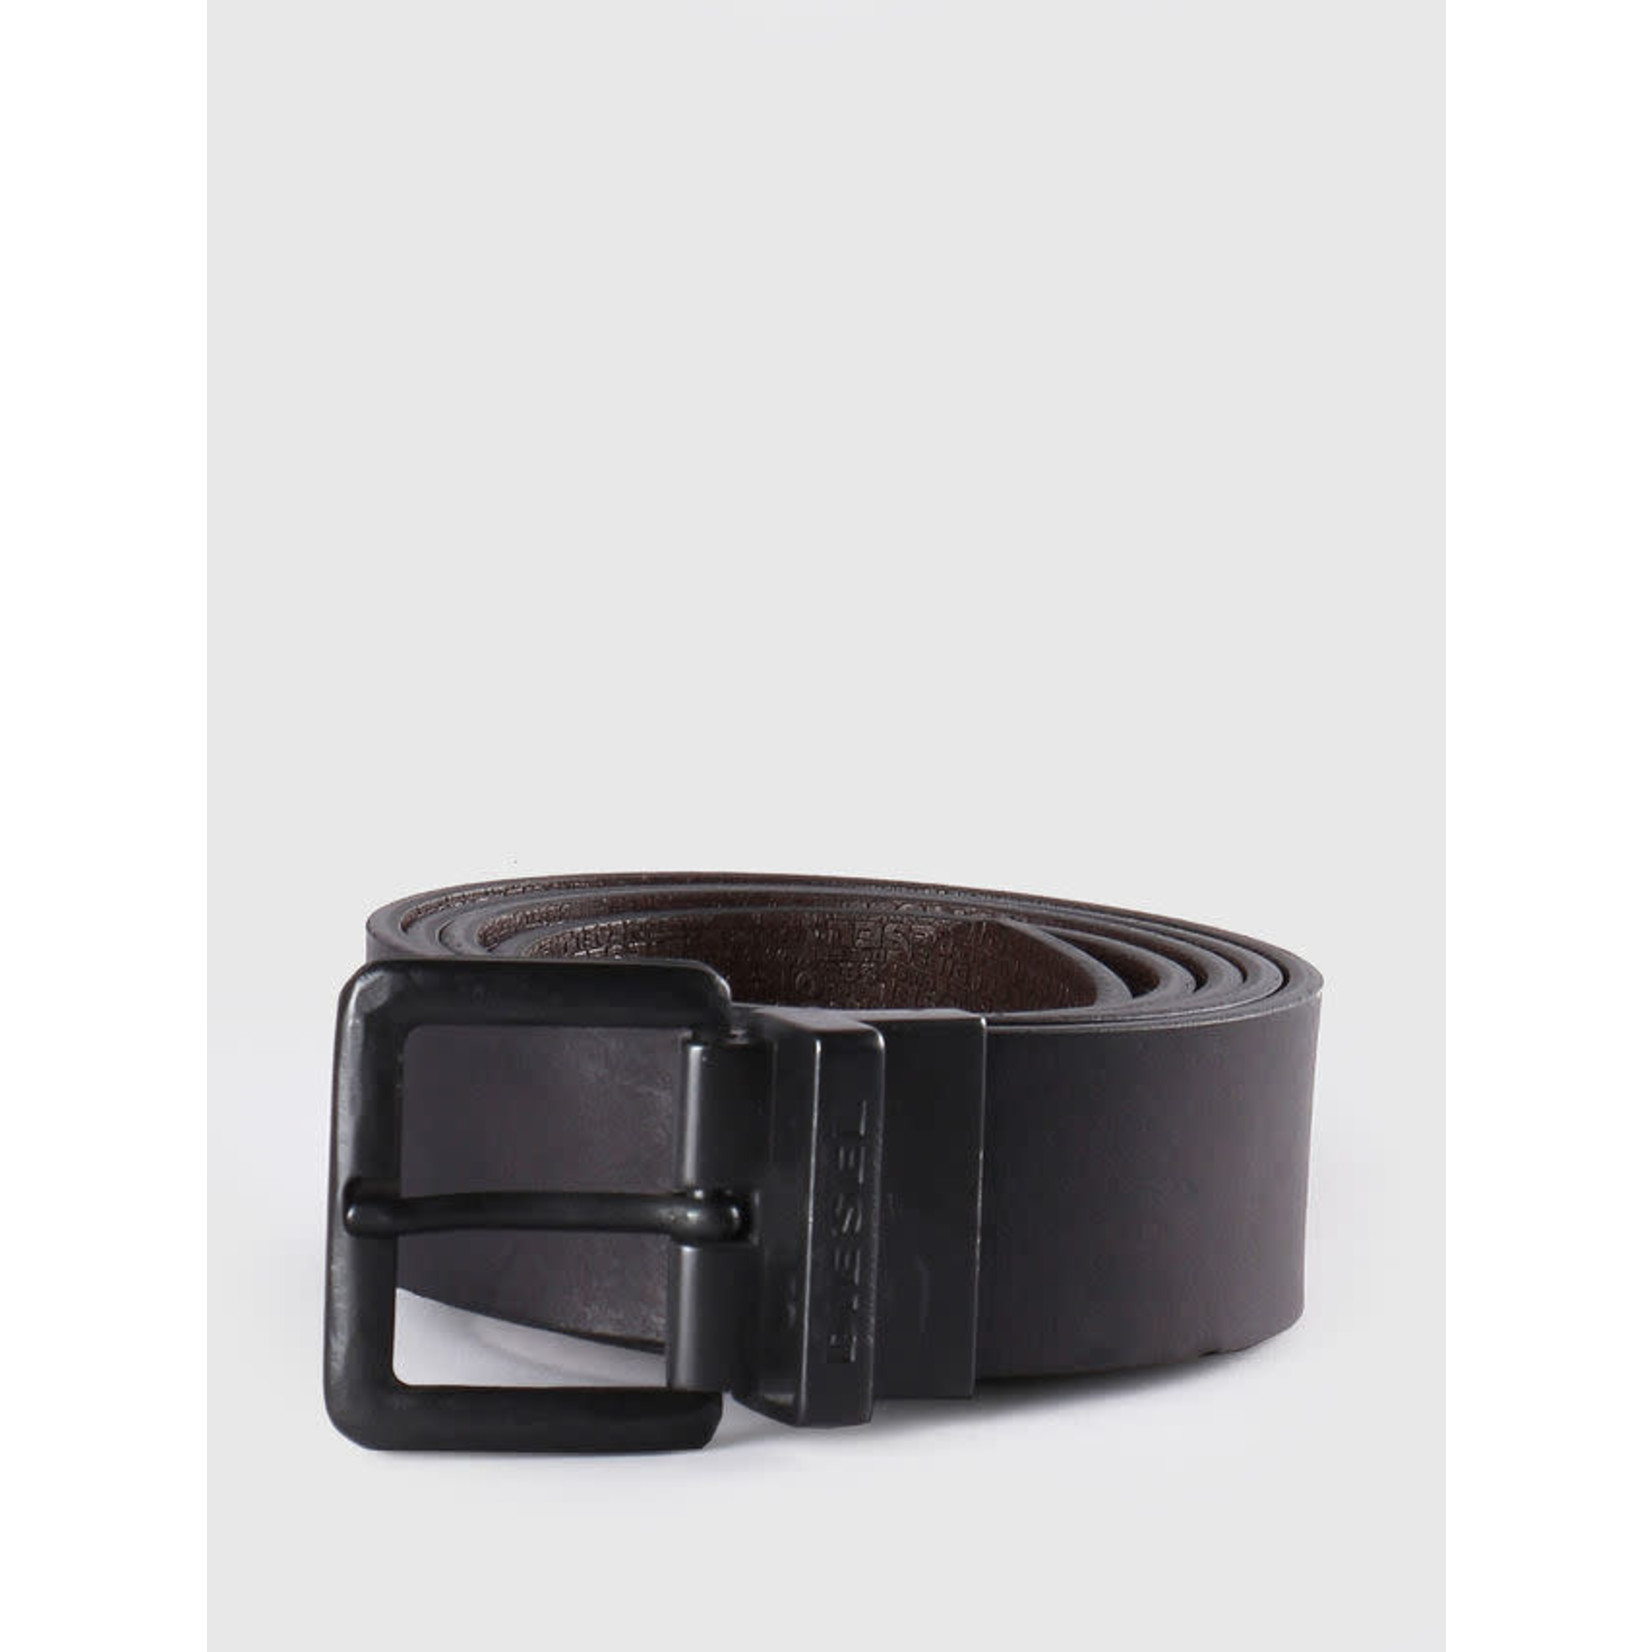 DIESEL Diesel - Men's Belt - B-Twin